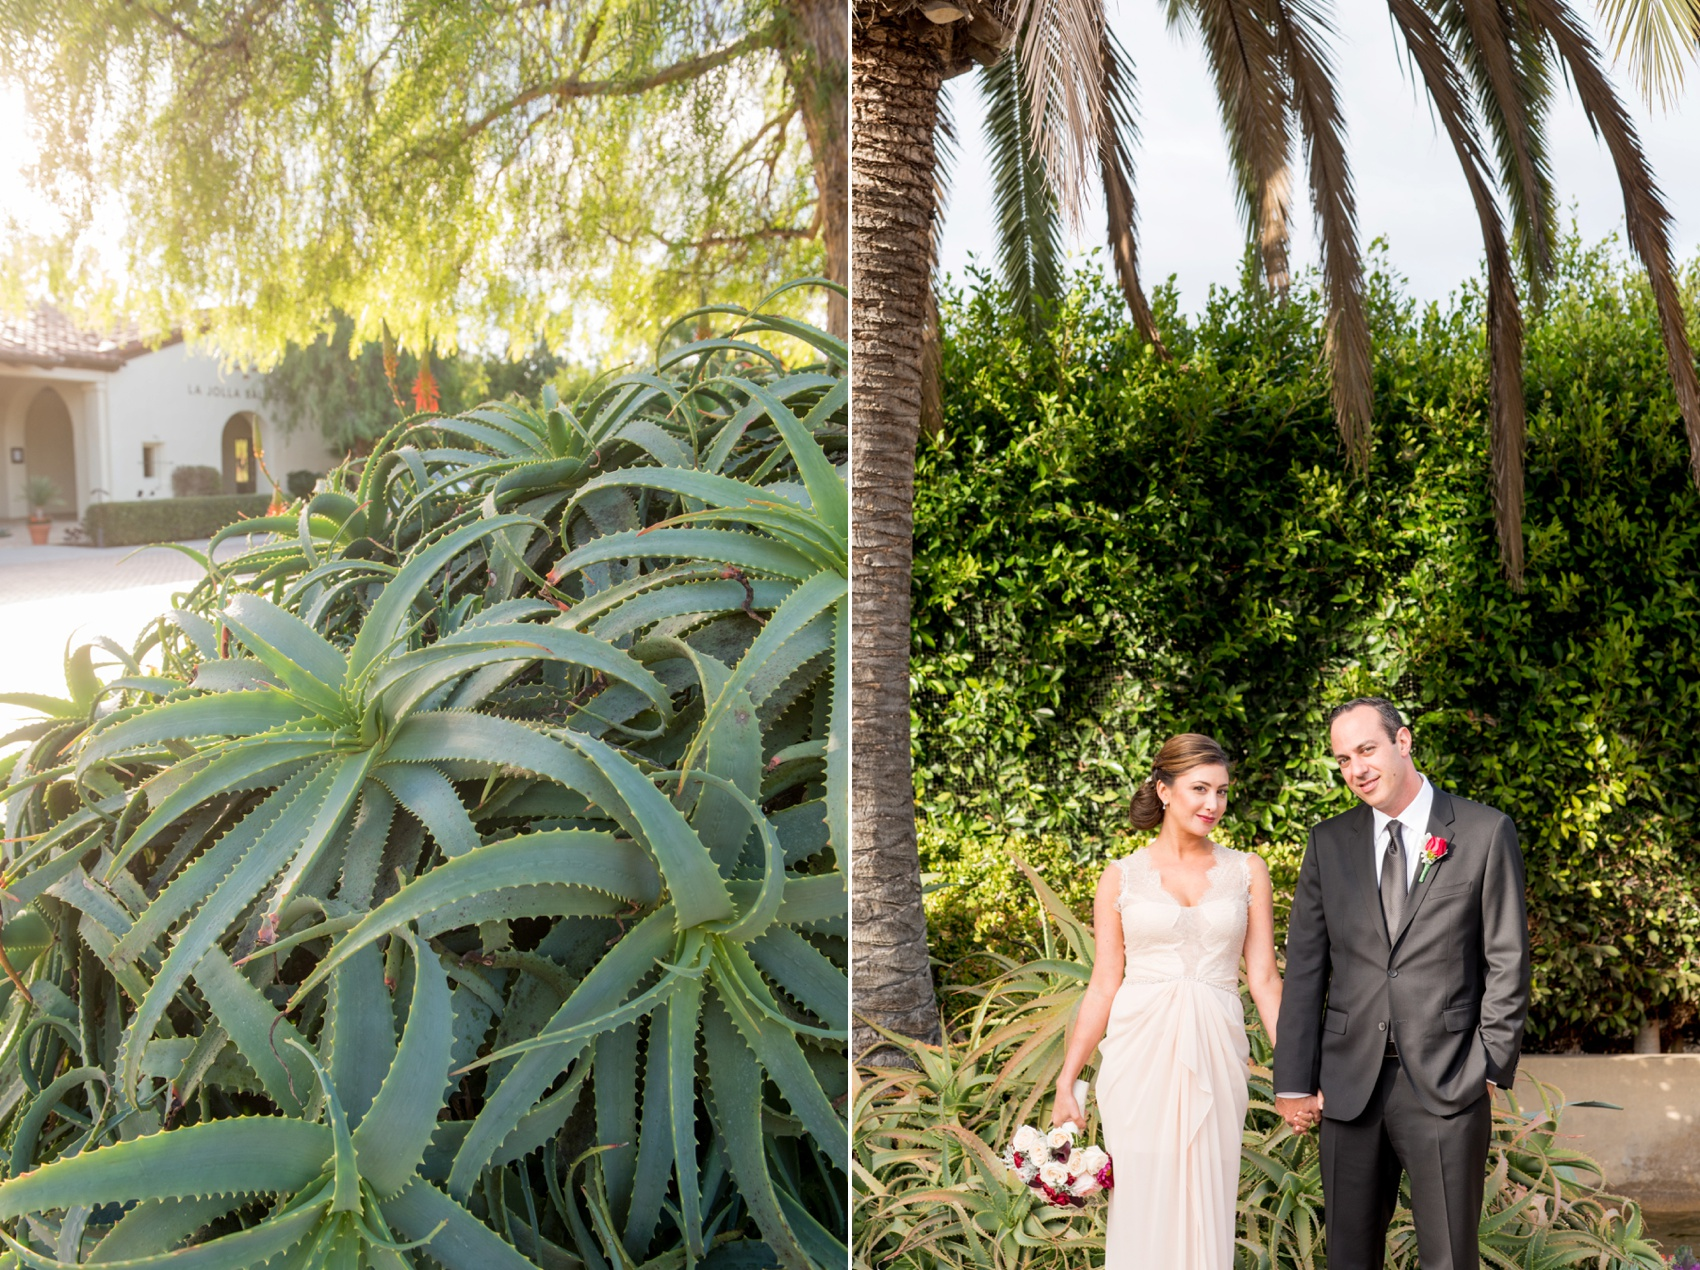 Estancia La Jolla wedding photography by Mikkel Paige Photography. Tropical wedding, California coast. Bride and groom photos. Bridal gown of lace and pink chiffon by BCBG Max Azria.